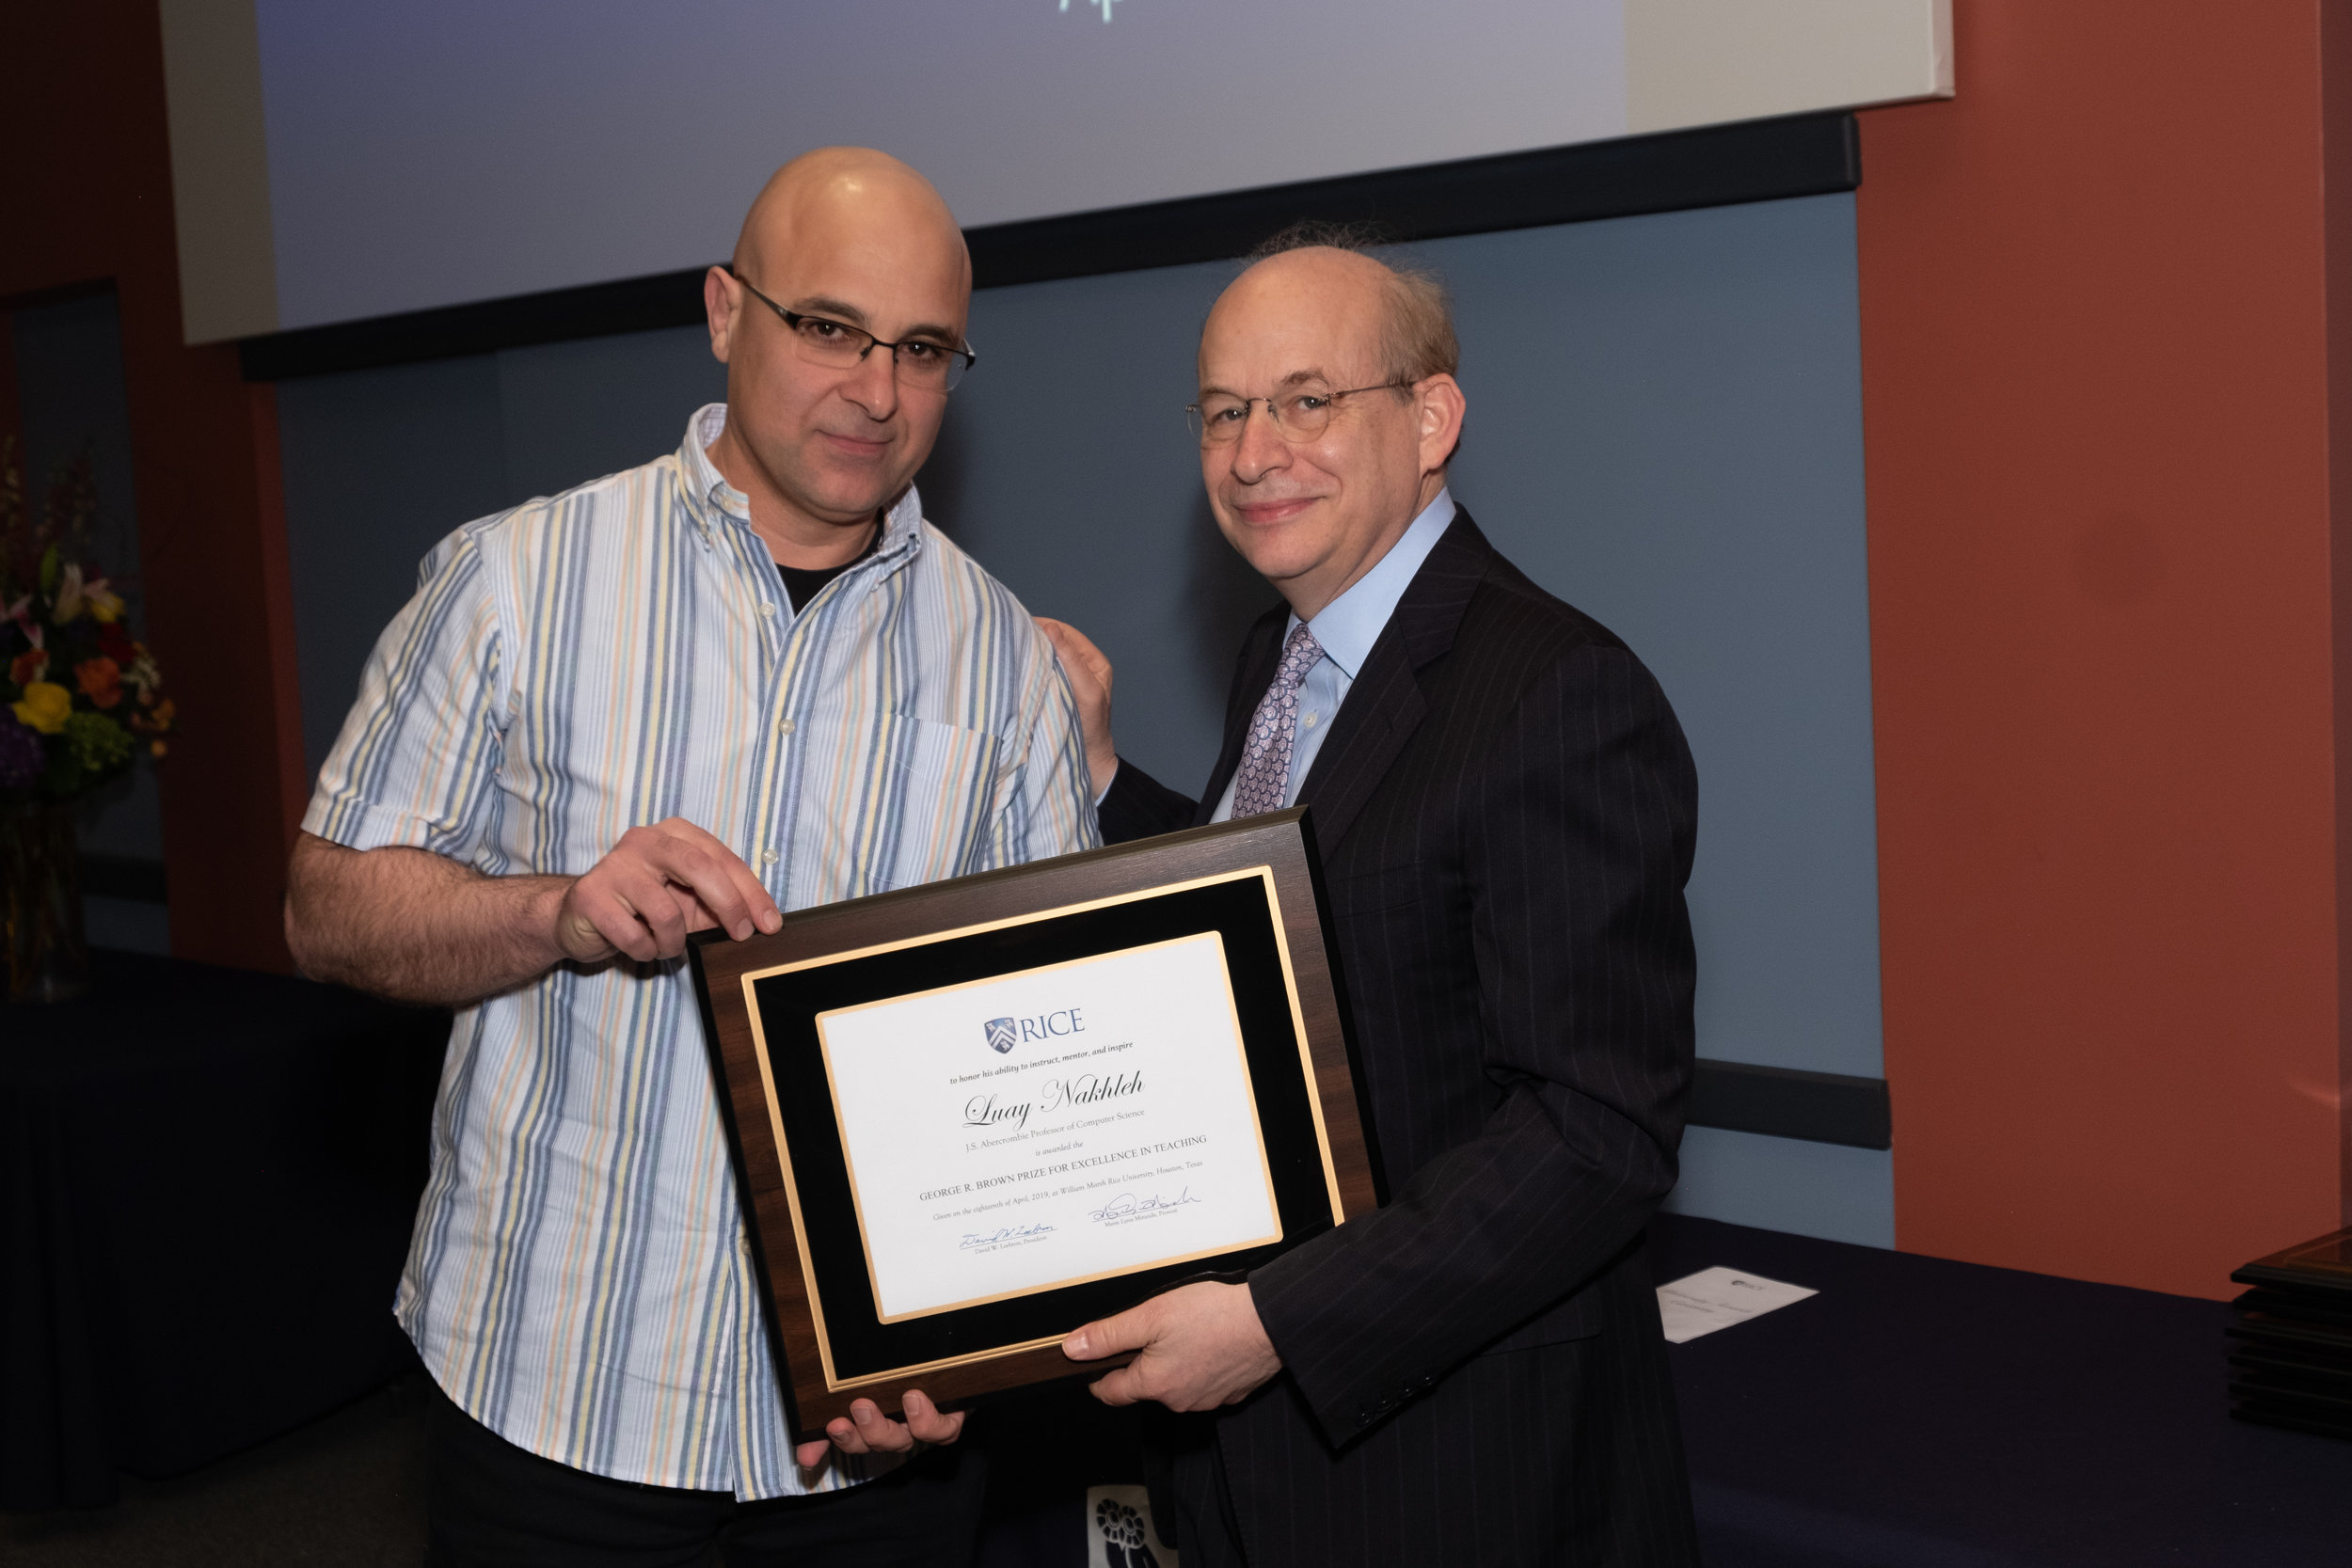 President Leebron & Luay Nakhleh, George R. Brown Prize for Excellence in Teaching